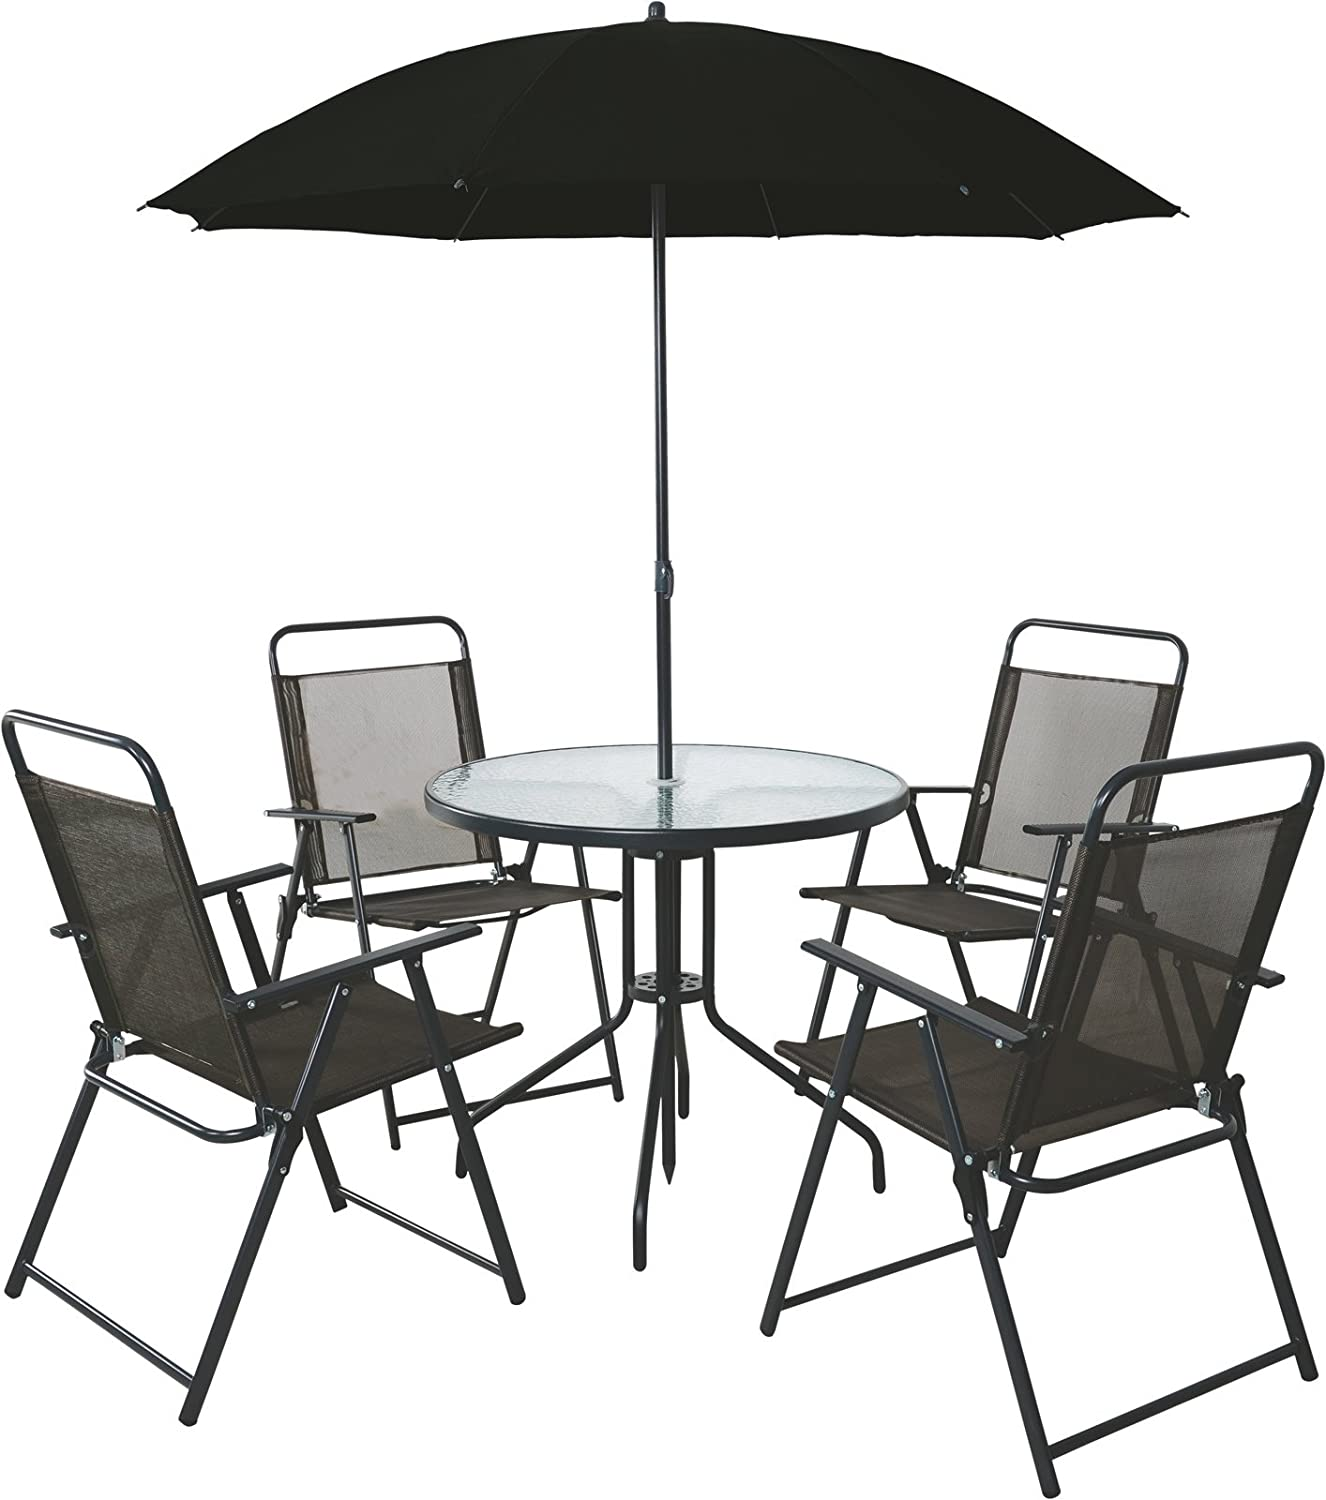 4 Seater Outdoor Garden Furniture Dining Set Round Table & Chairs